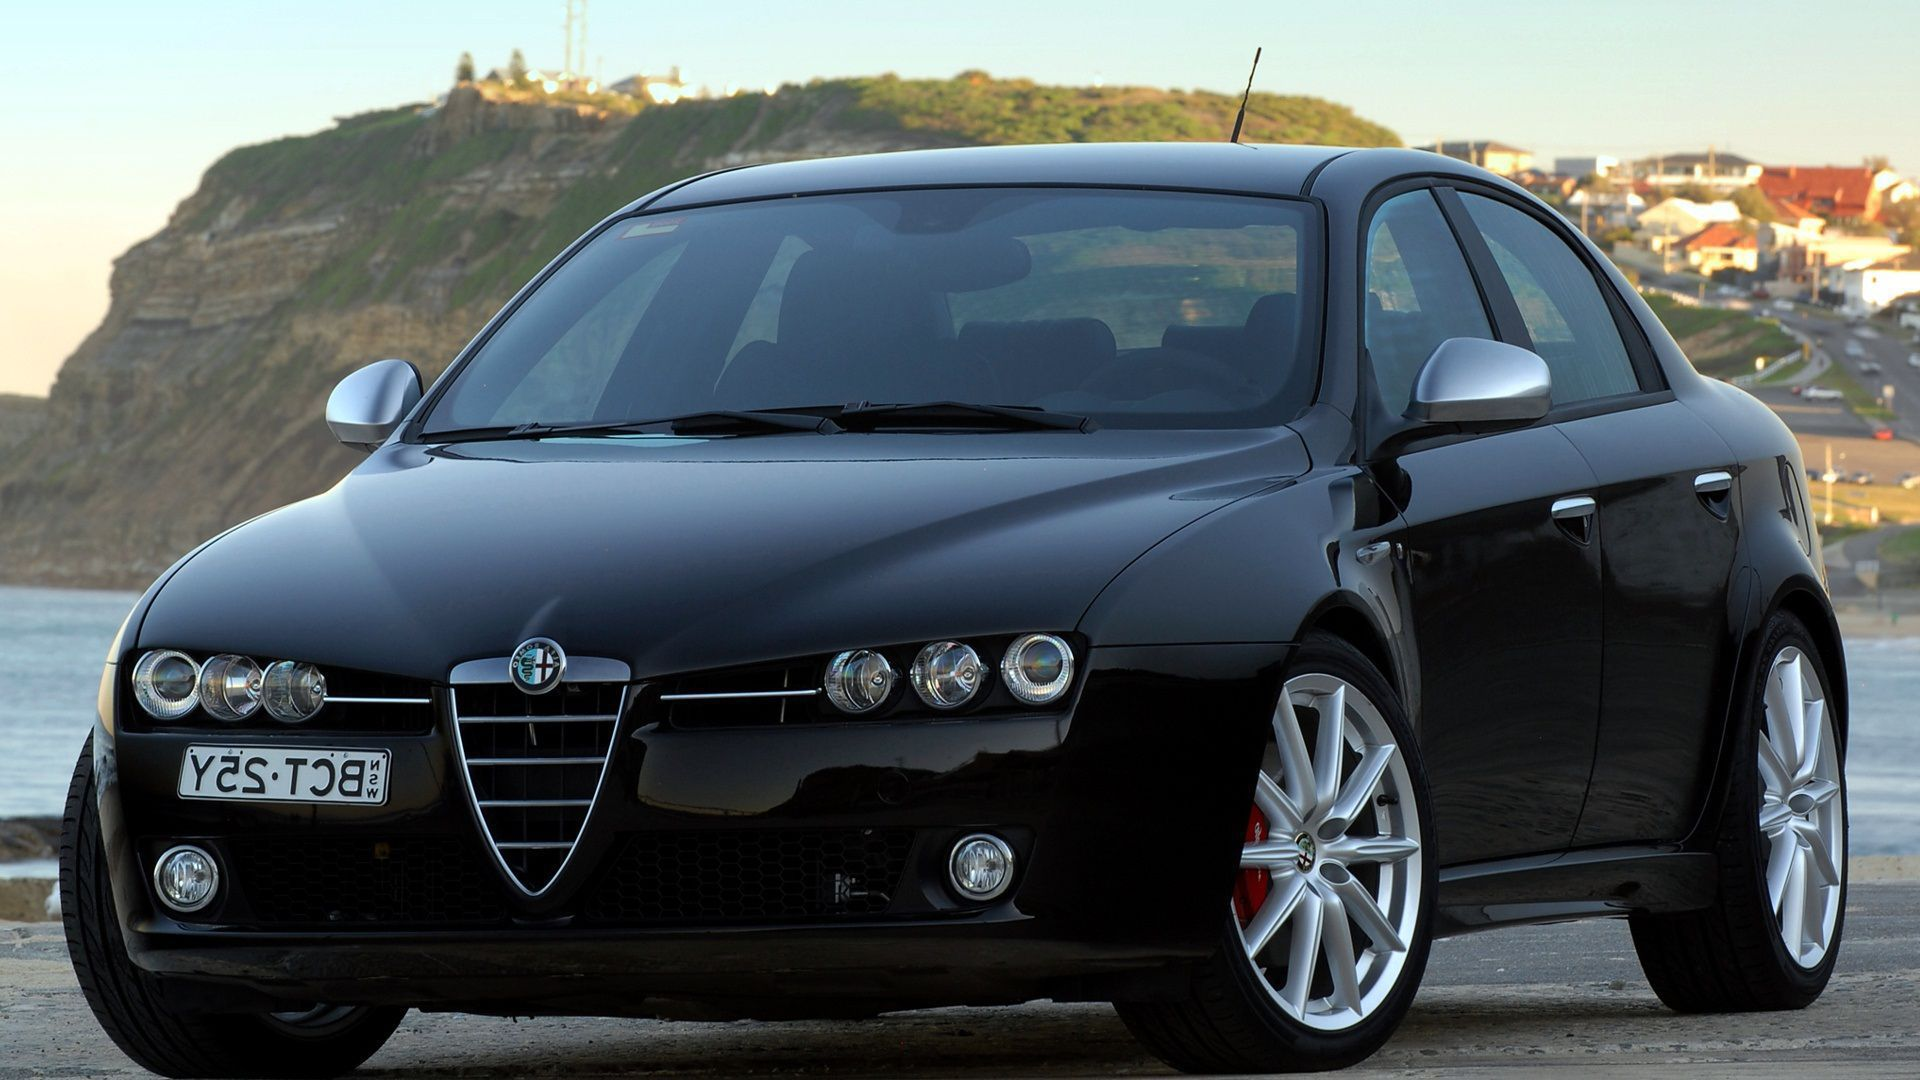 Alfa Romeo 159 Background